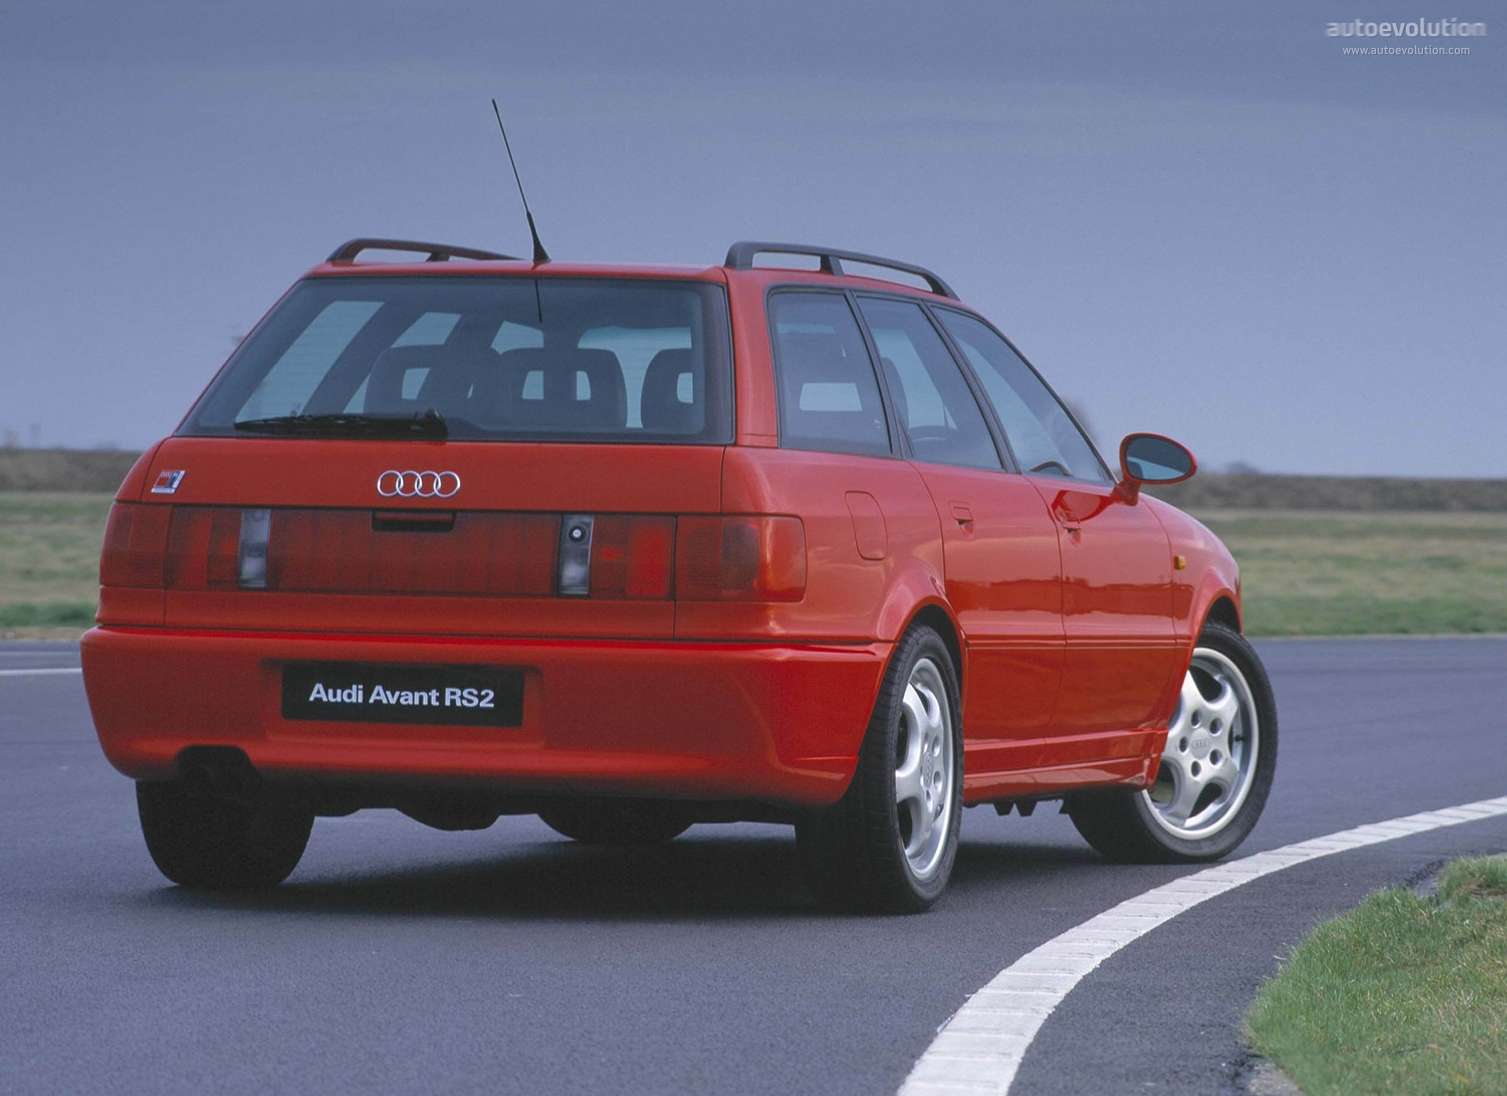 1994 Audi S2 avant - pictures, information and specs ...